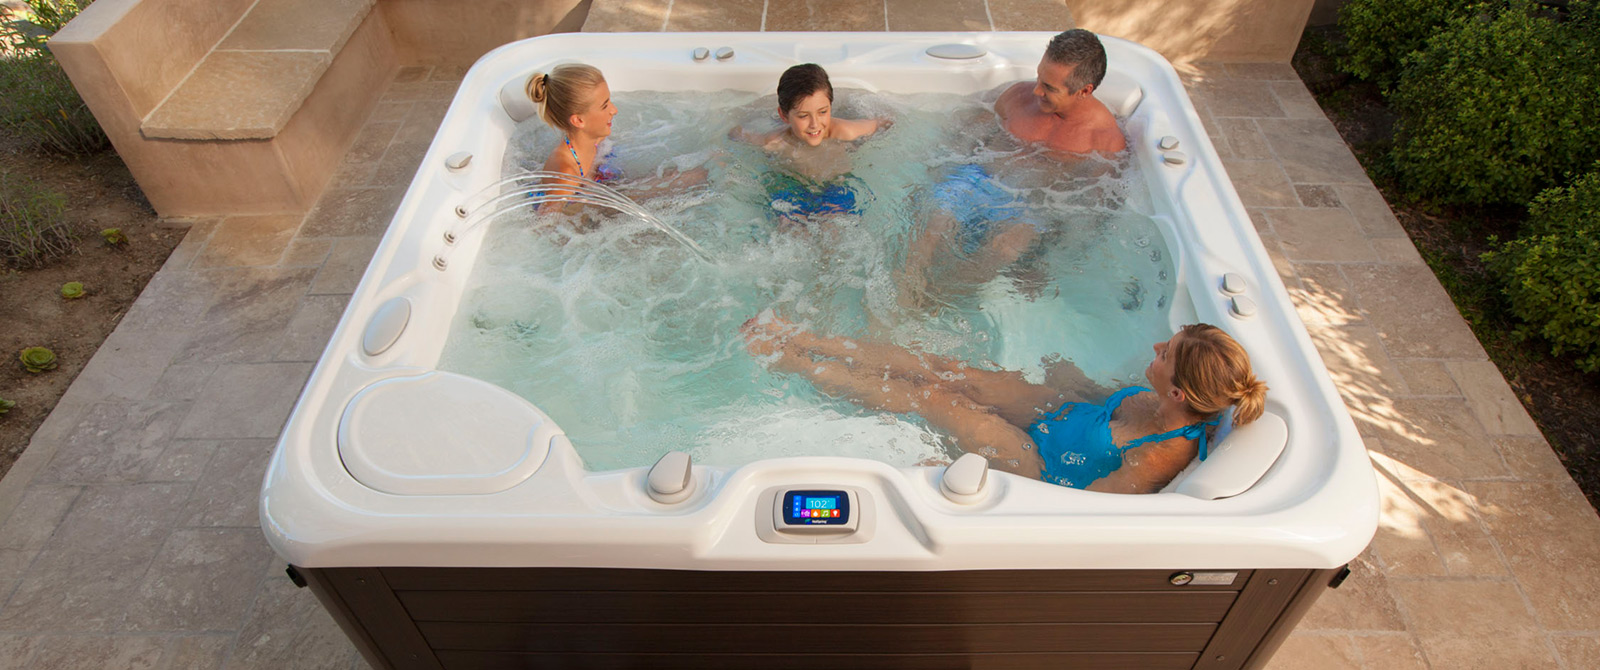 Hot Tub Installation 5 Things You Need To Know